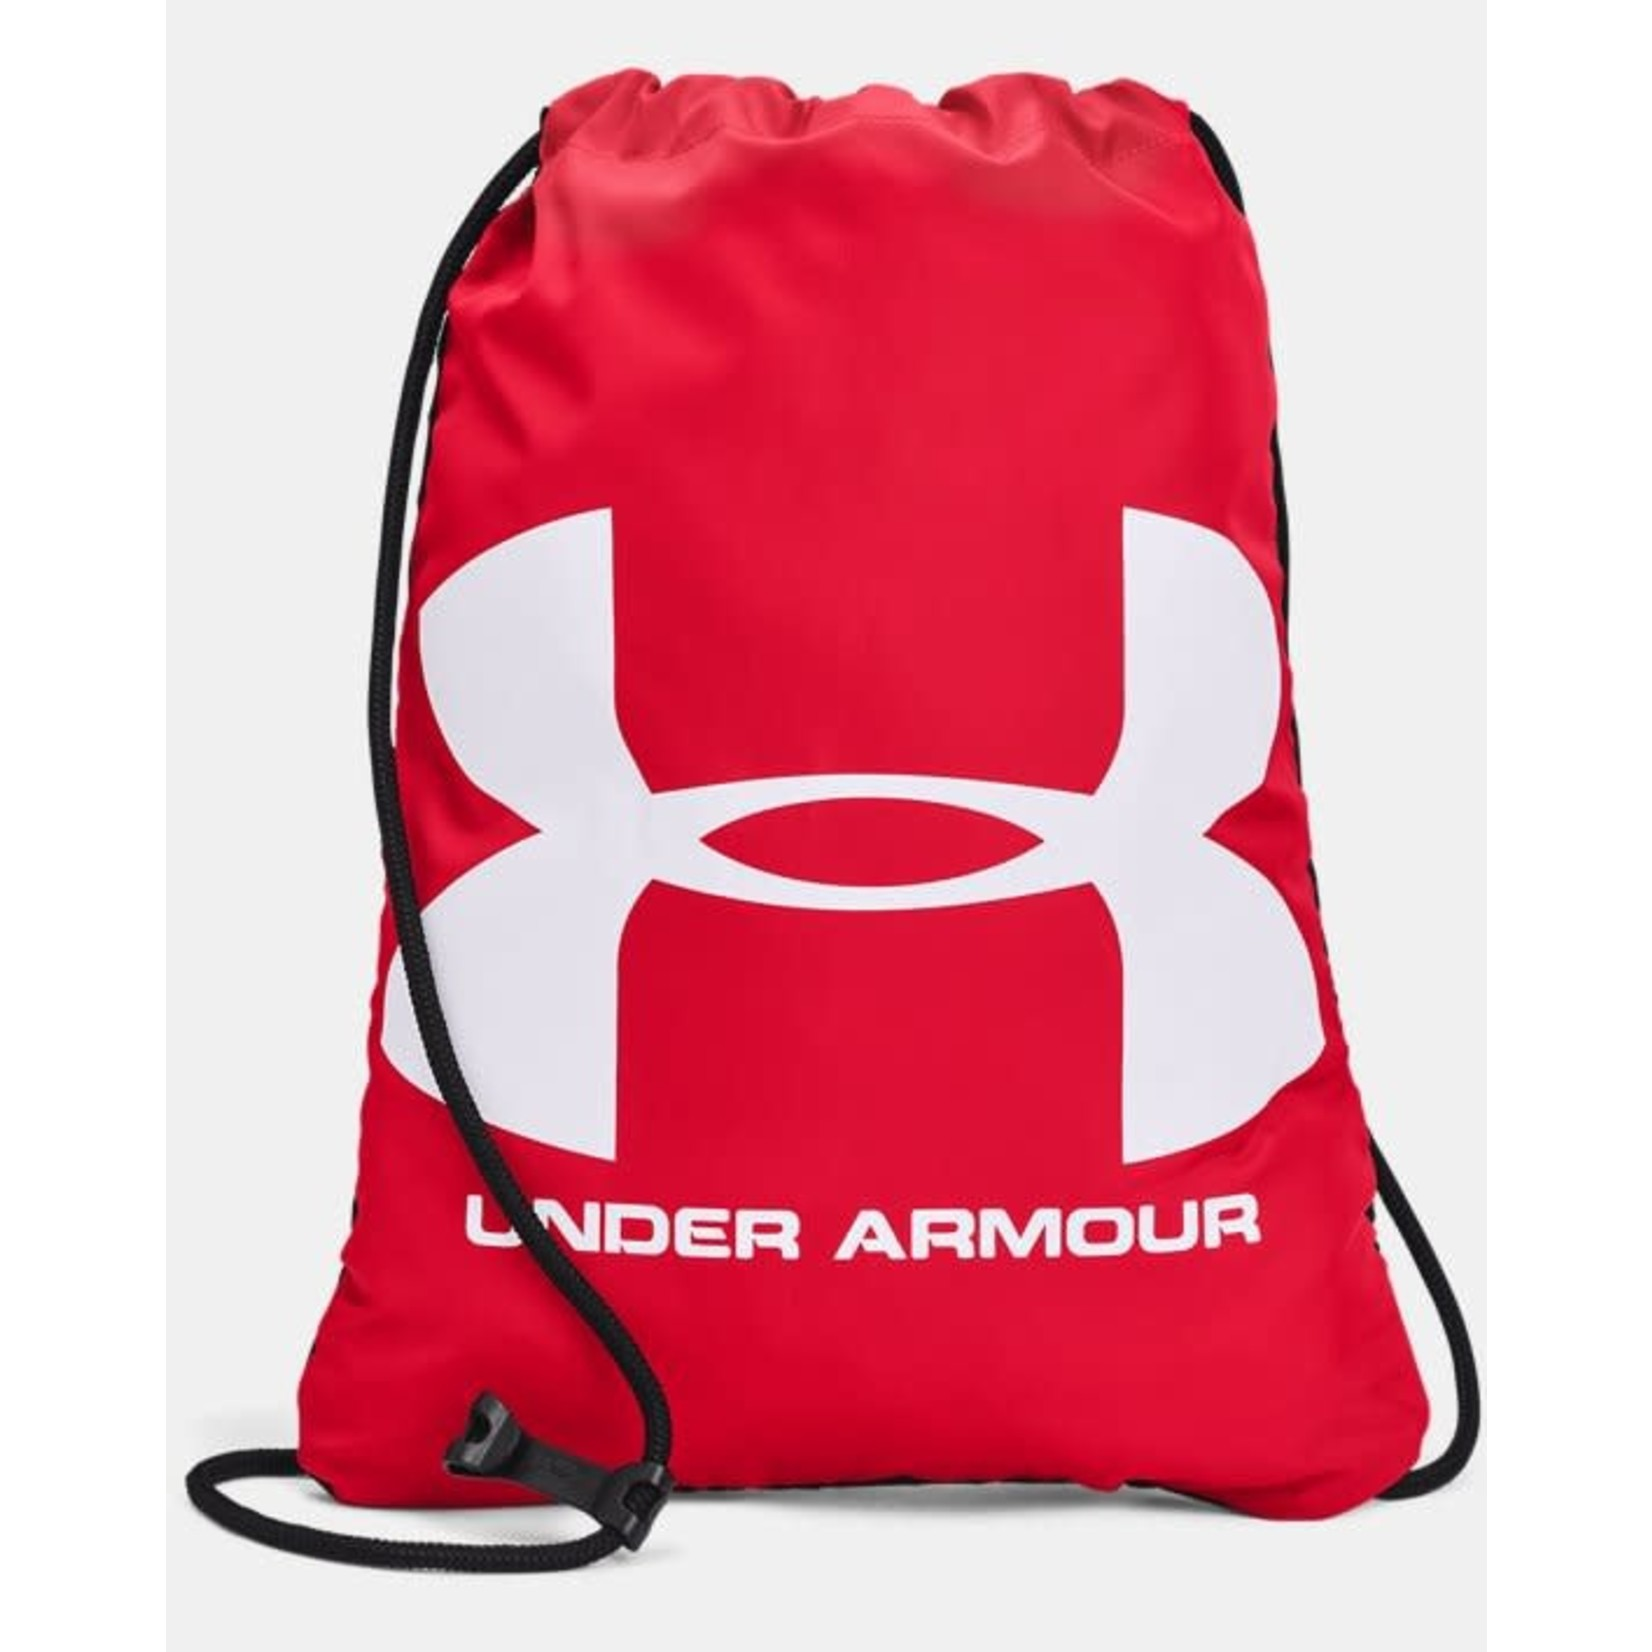 Under Armour Under Armour Sackpack, Ozsee, OS